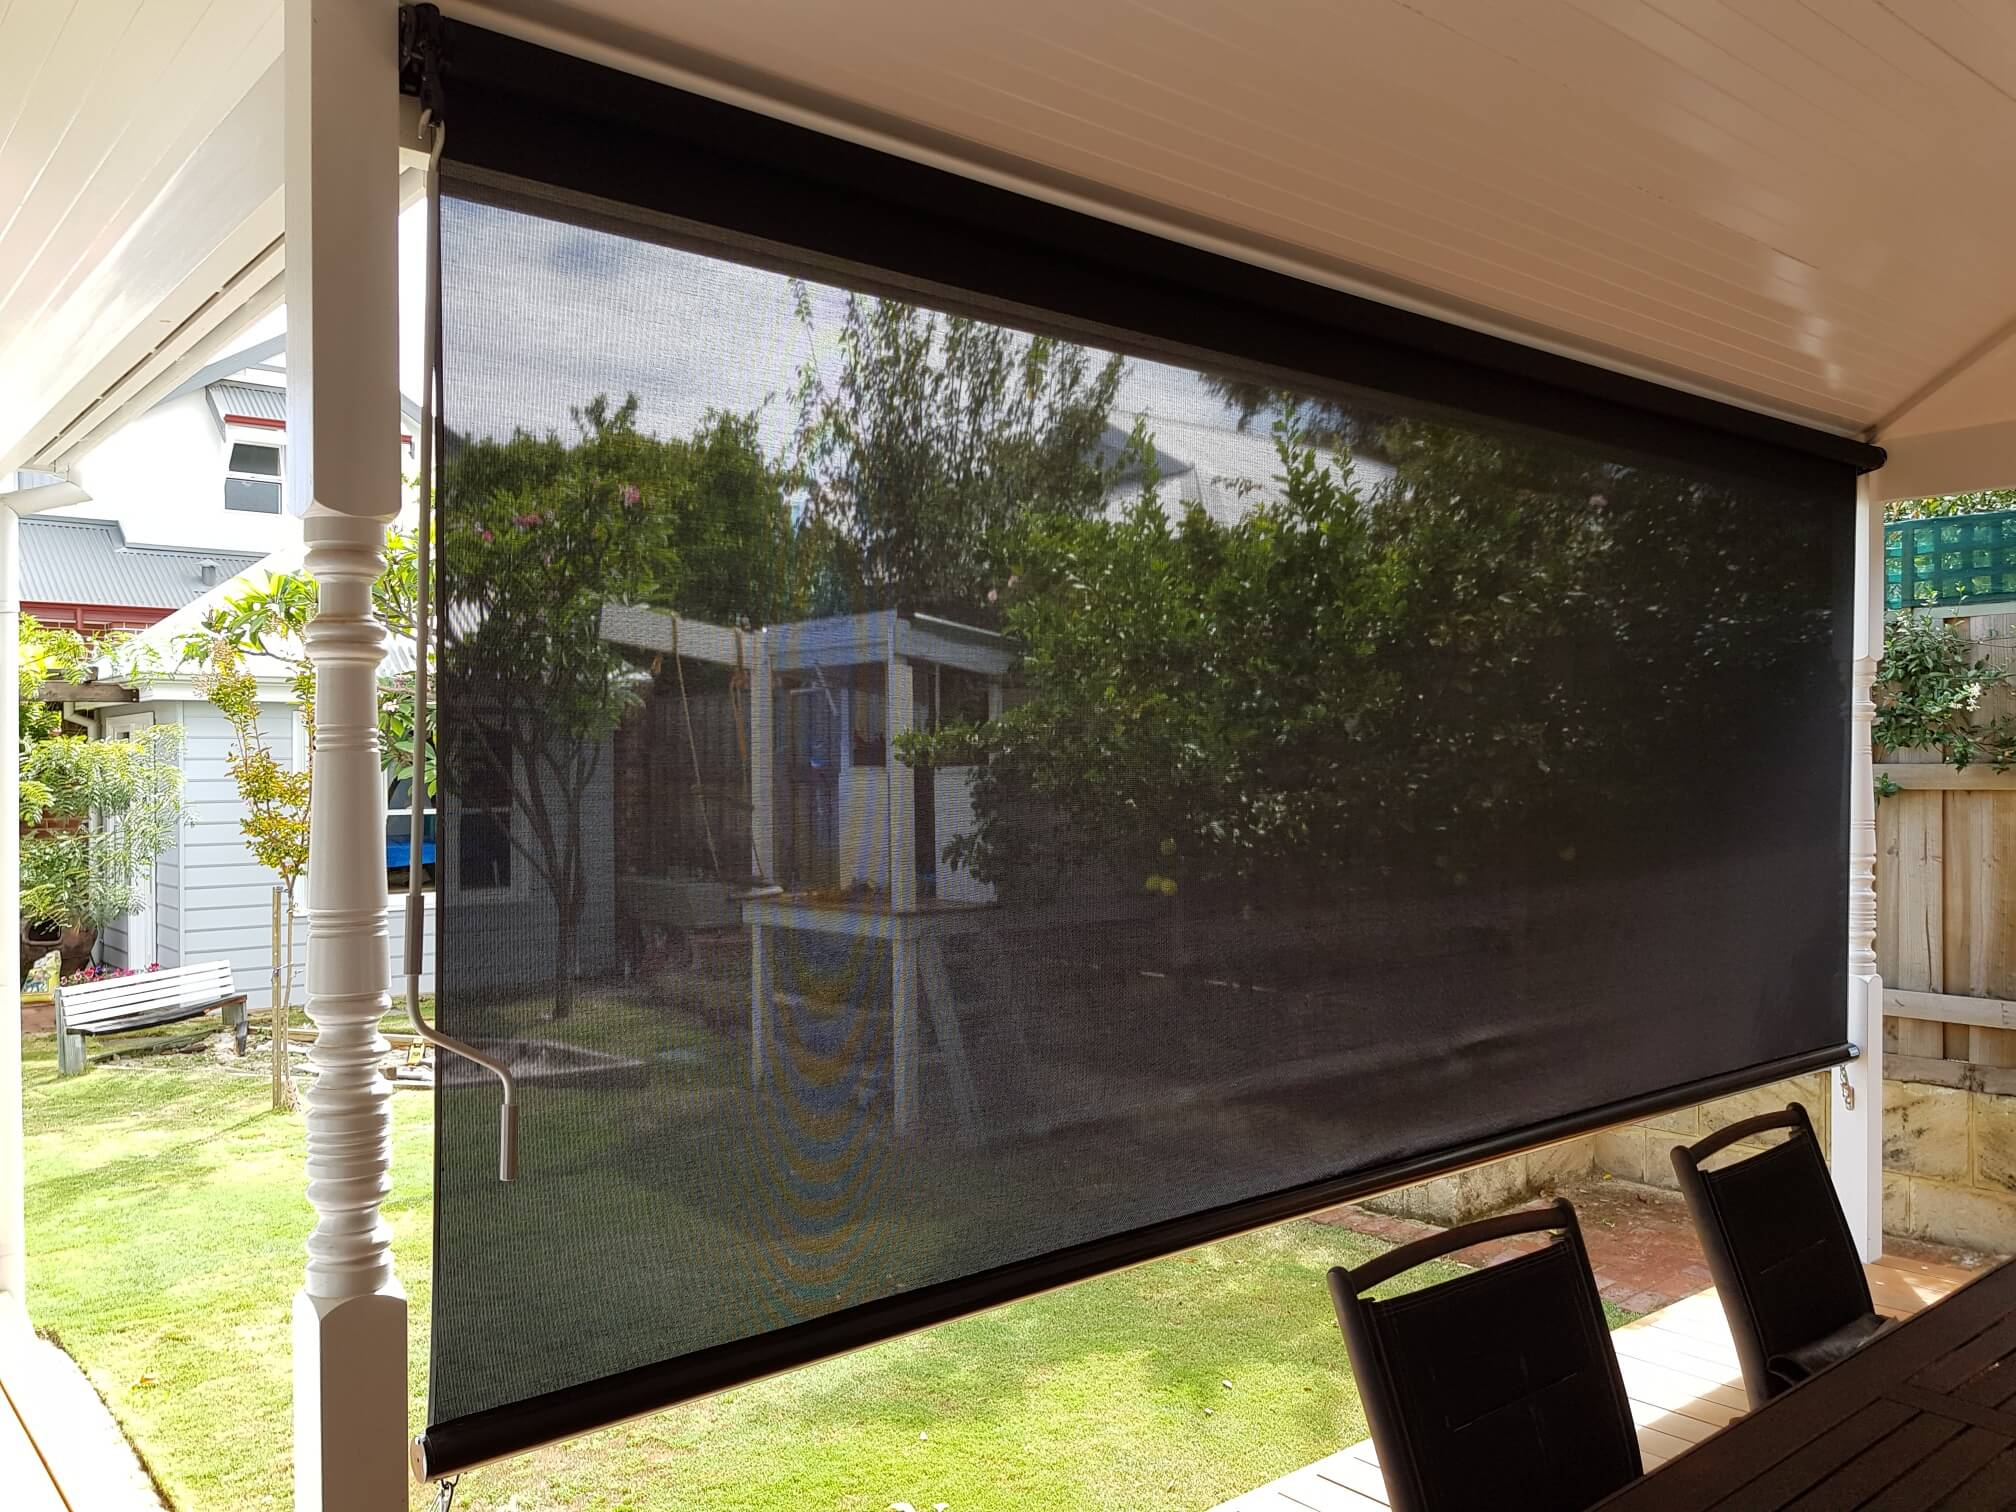 Patio Mesh Blinds Roll Down - Outdoor Shade Blinds - Kenlow